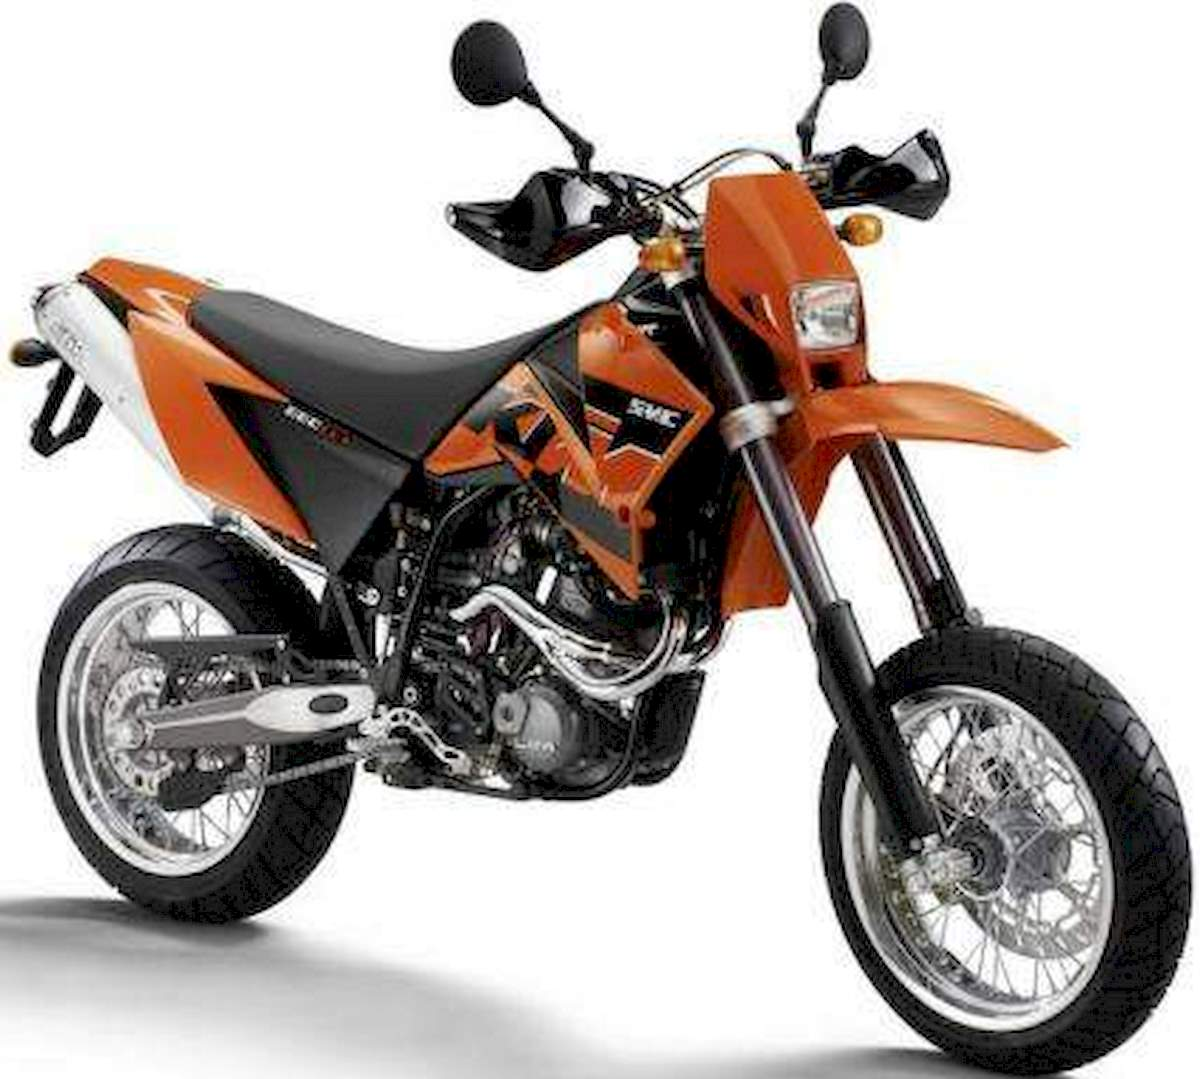 Image of KTM 660 LC4